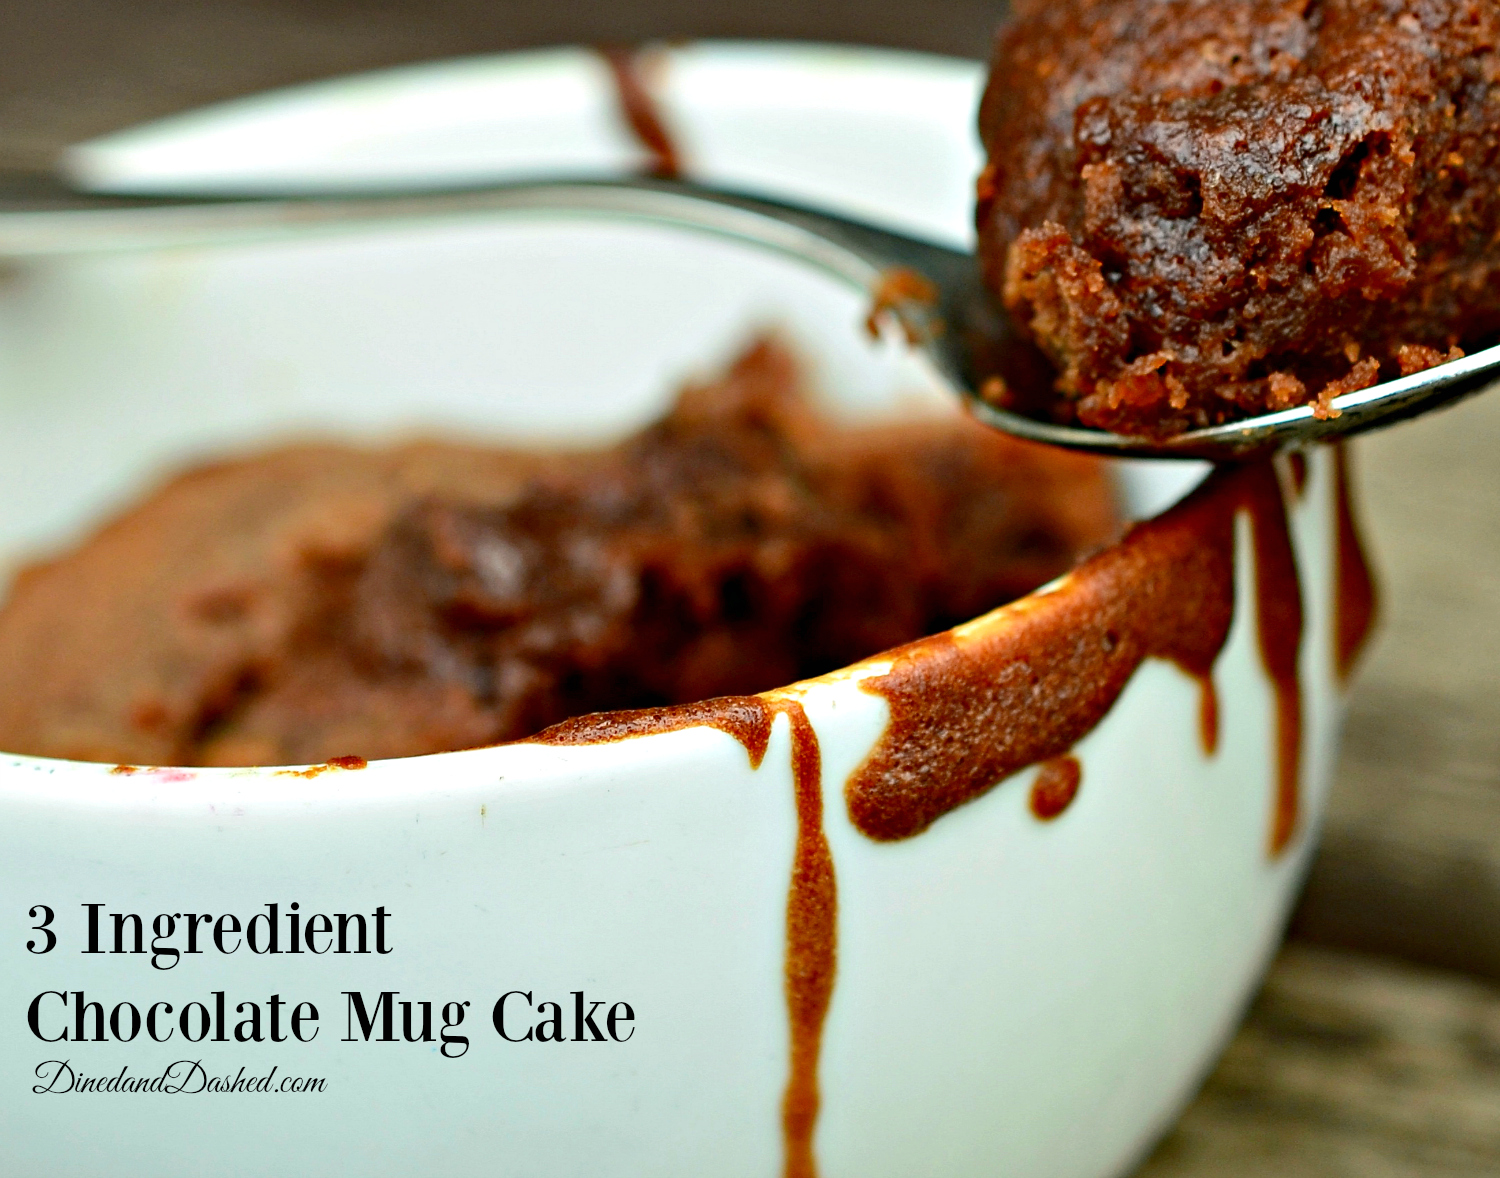 3 Ingredient Chocolate Mug Cake